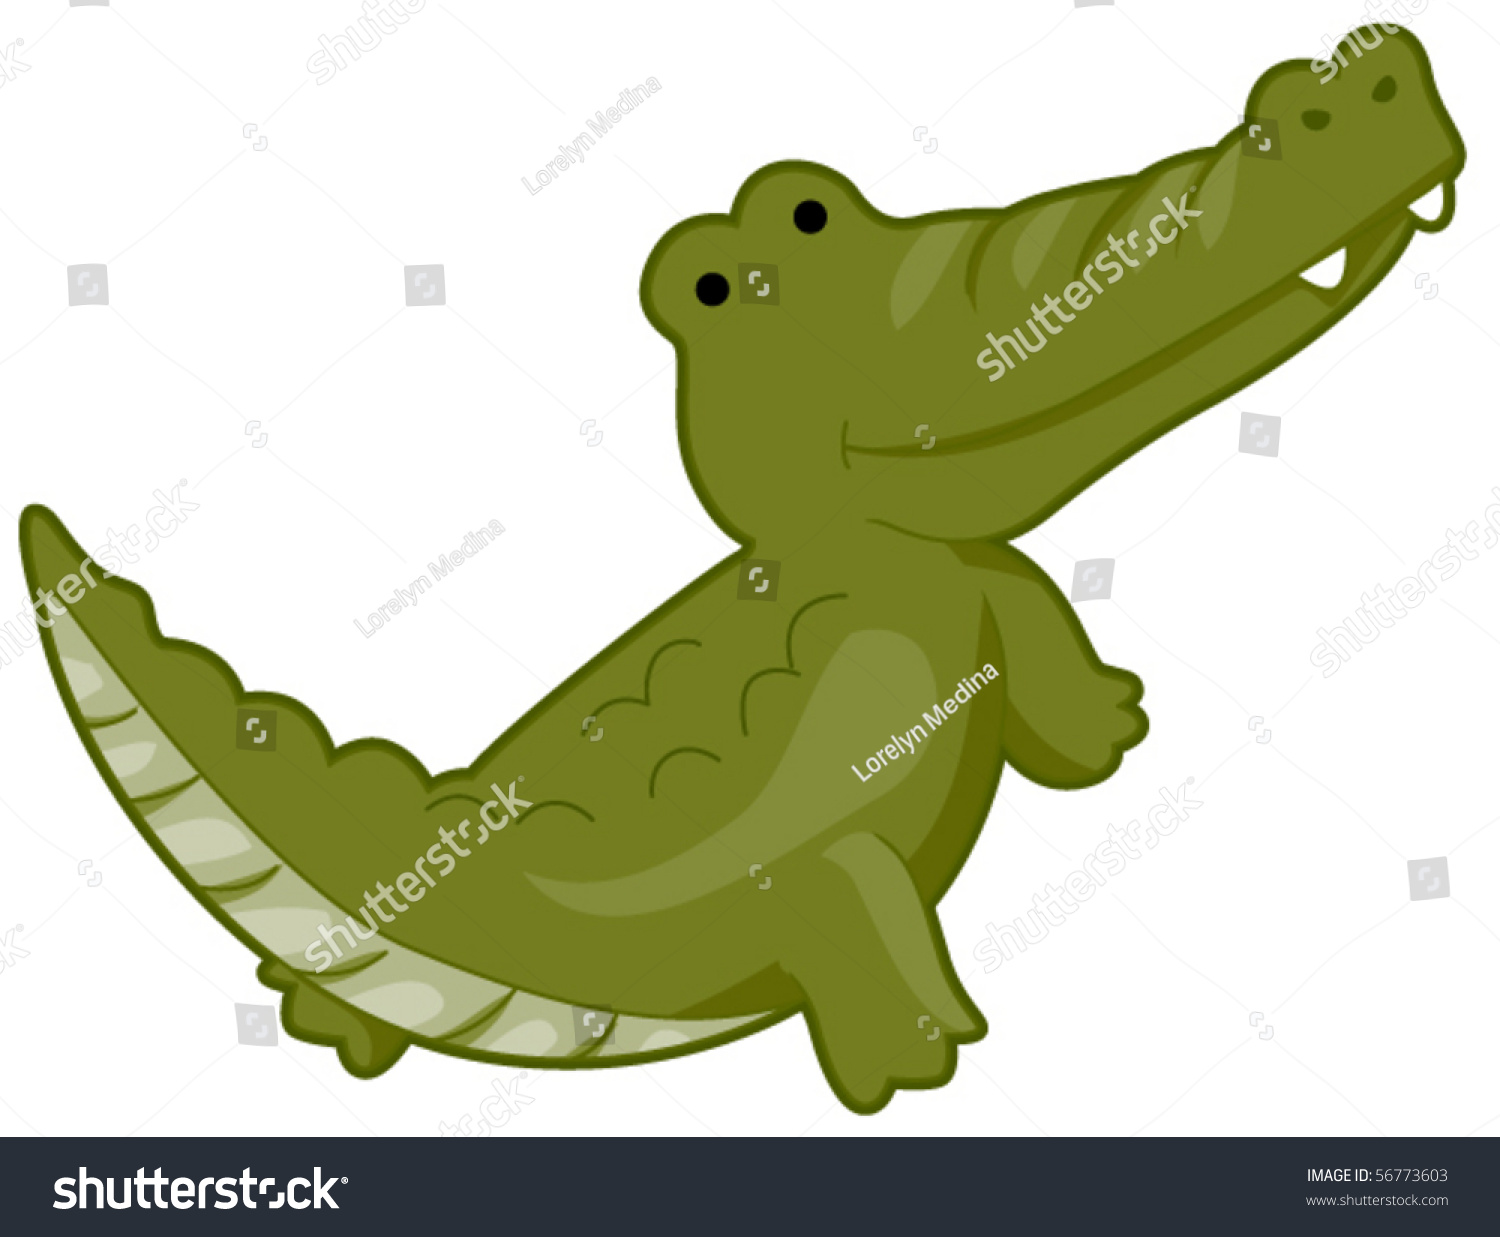 Cute Crocodile - Vector - 56773603 : Shutterstock